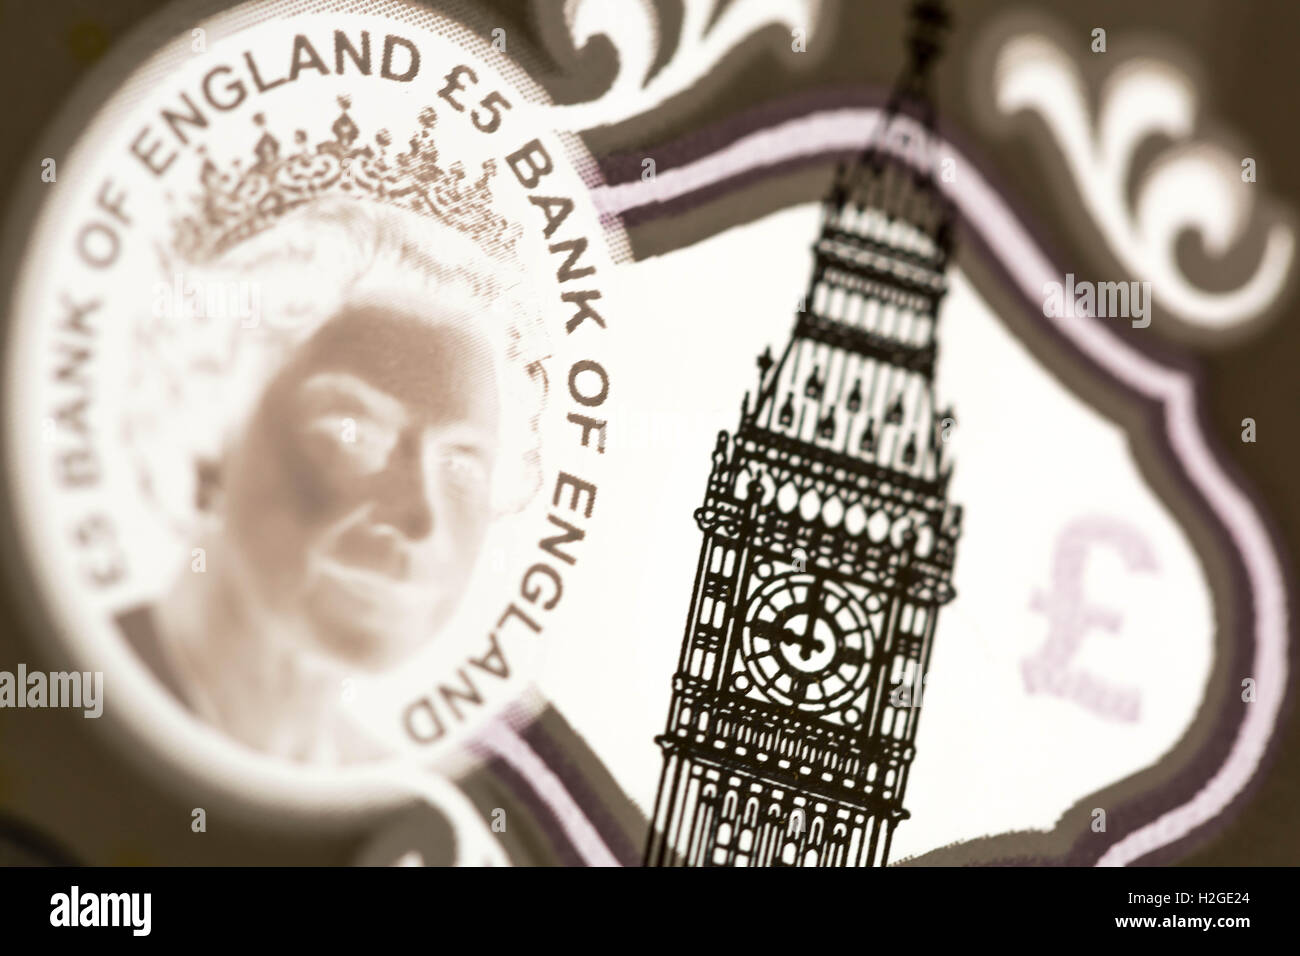 New issue British £5 polymer banknote - Stock Image